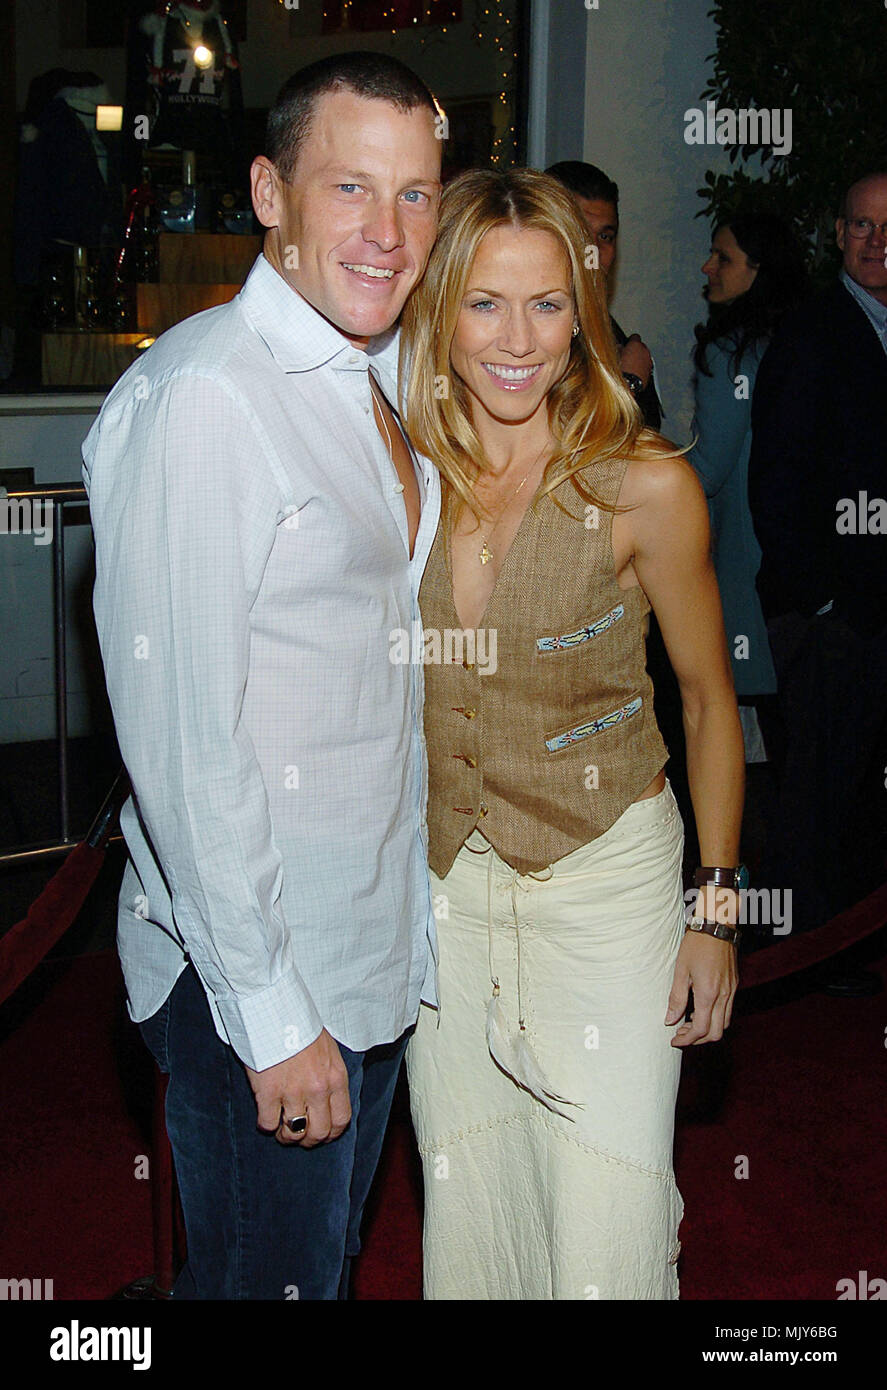 Lance Armstrong and Sheryl Crow arriving at the Meet The Fockers Premiere at the Universal Amphitheatre in Los Angeles. December 16, 2004.          -            ArmstrongL_CrowSheryl047.JPG           -              ArmstrongL_CrowSheryl047.JPGArmstrongL_CrowSheryl047  Event in Hollywood Life - California,  Red Carpet Event, Vertical, USA, Film Industry, Celebrities,  Photography, Bestof, Arts Culture and Entertainment, Topix Celebrities fashion /  from the Red Carpet-, Vertical, Best of, Hollywood Life, Event in Hollywood Life - California,  Red Carpet , USA, Film Industry, Celebrities,  movie - Stock Image